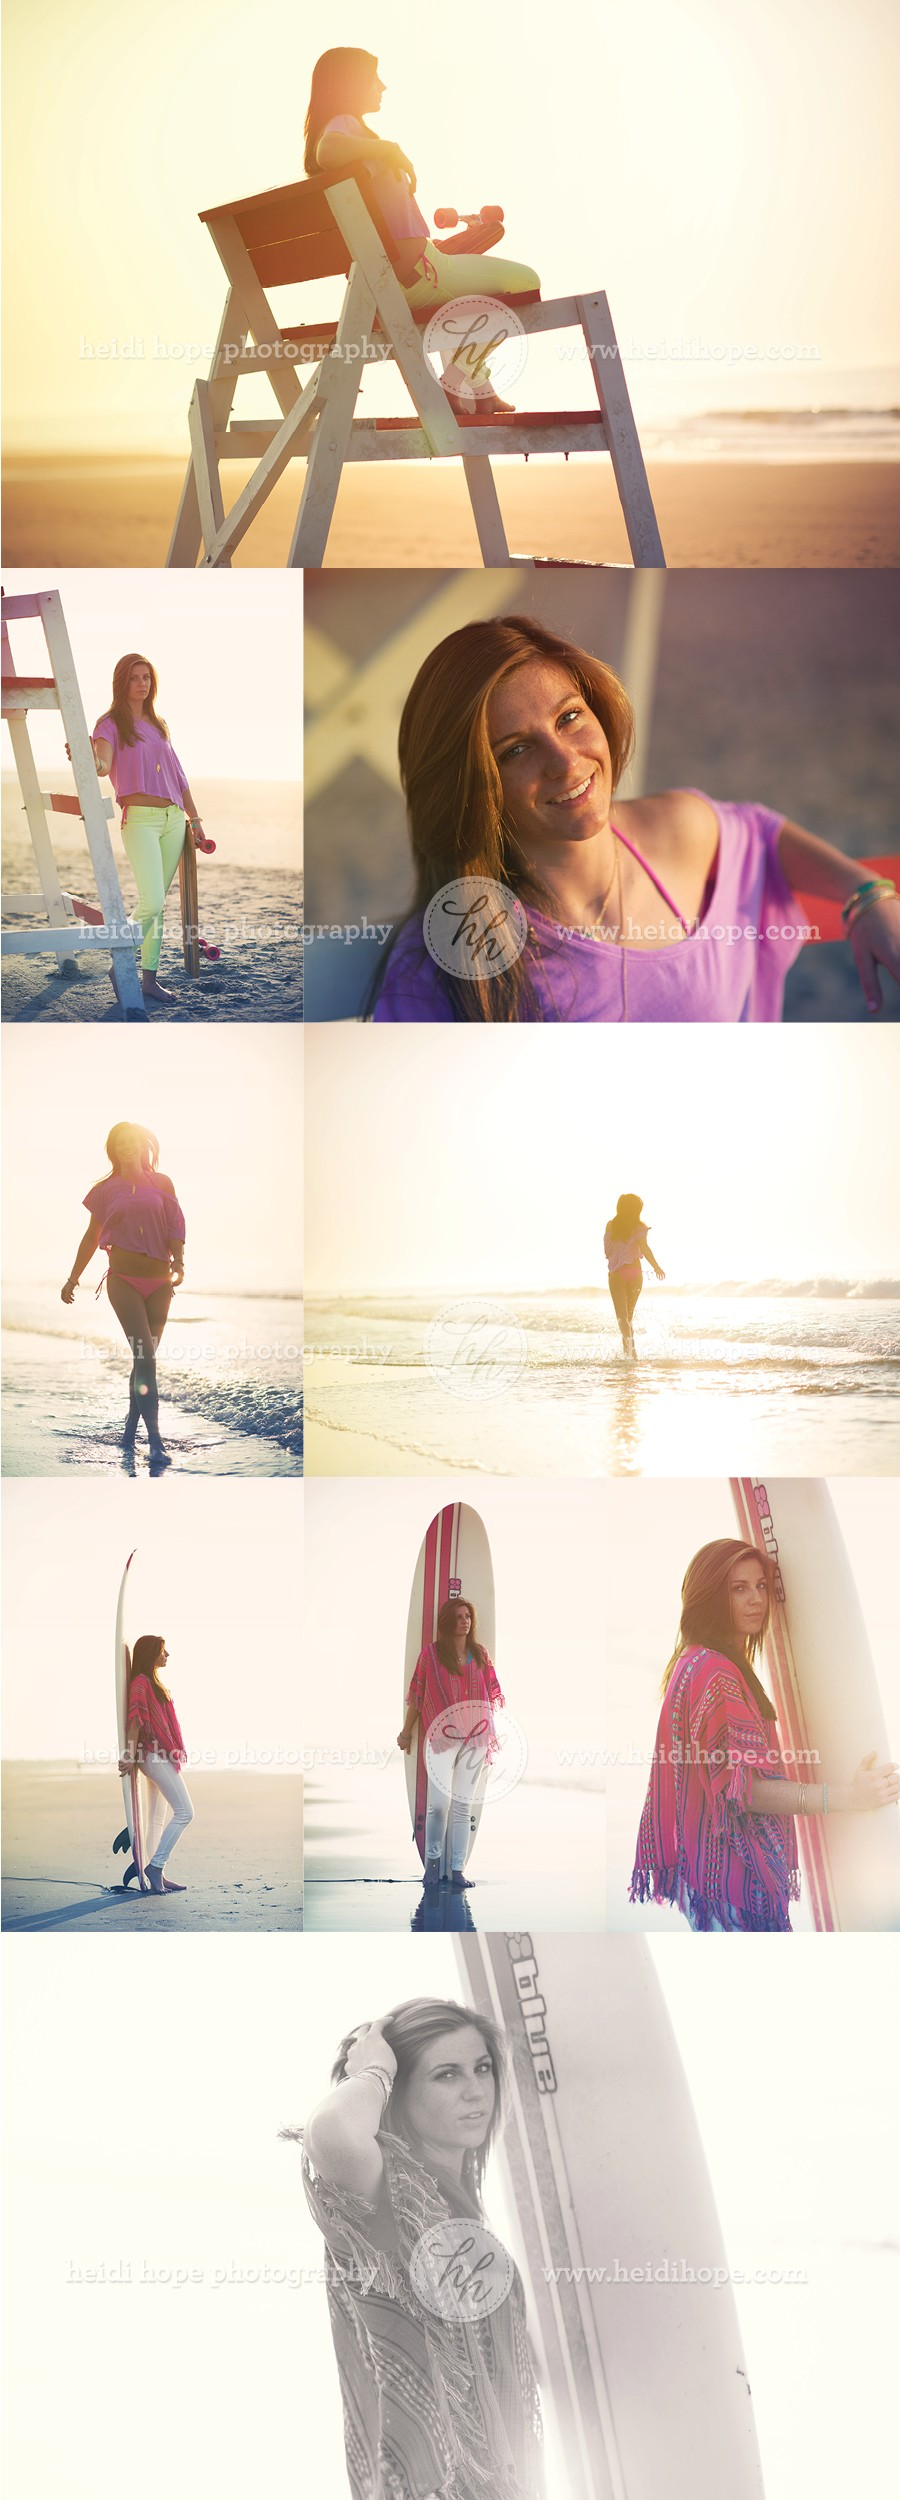 Teen Modeling and Senior Surfing Shoot on the beach by Heidi Hope Photography #surfing #surfer chic #beach style #senior shoot